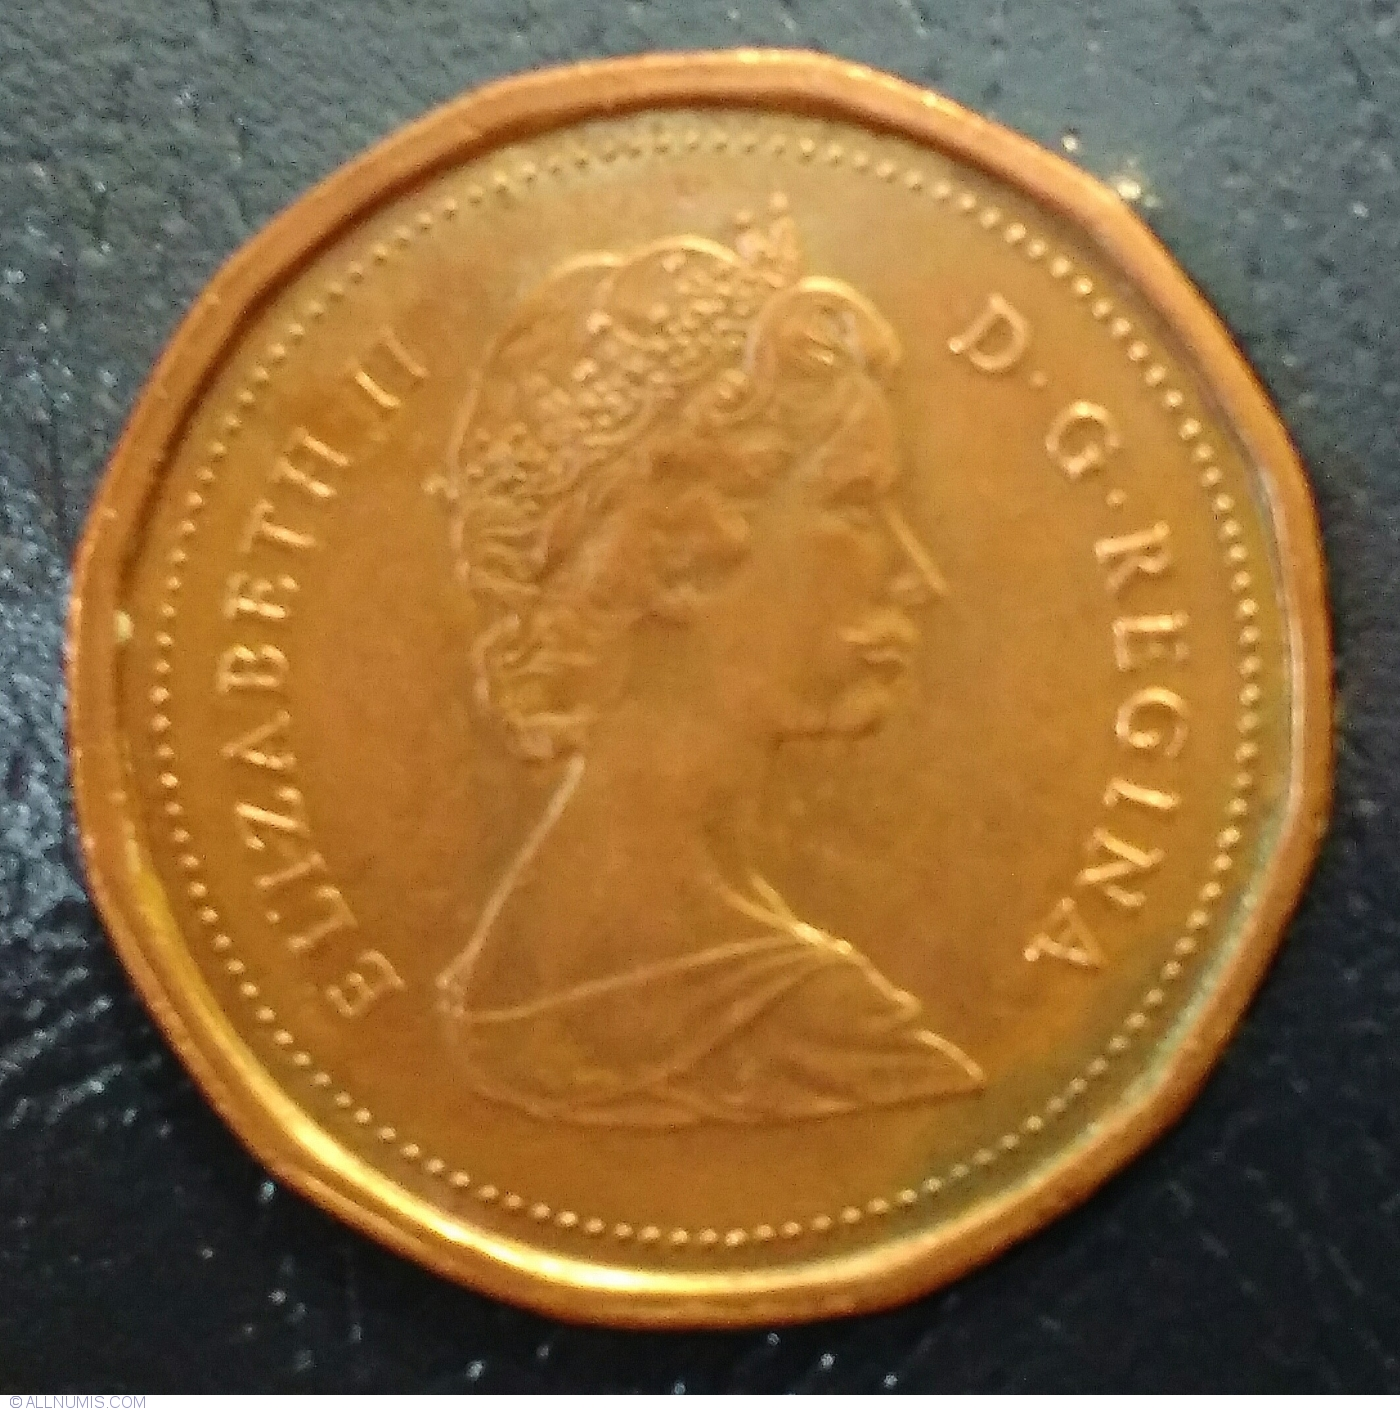 1 Cent 1985 Pointed 5 Elizabeth Ii 1953 Present Canada Coin 37832